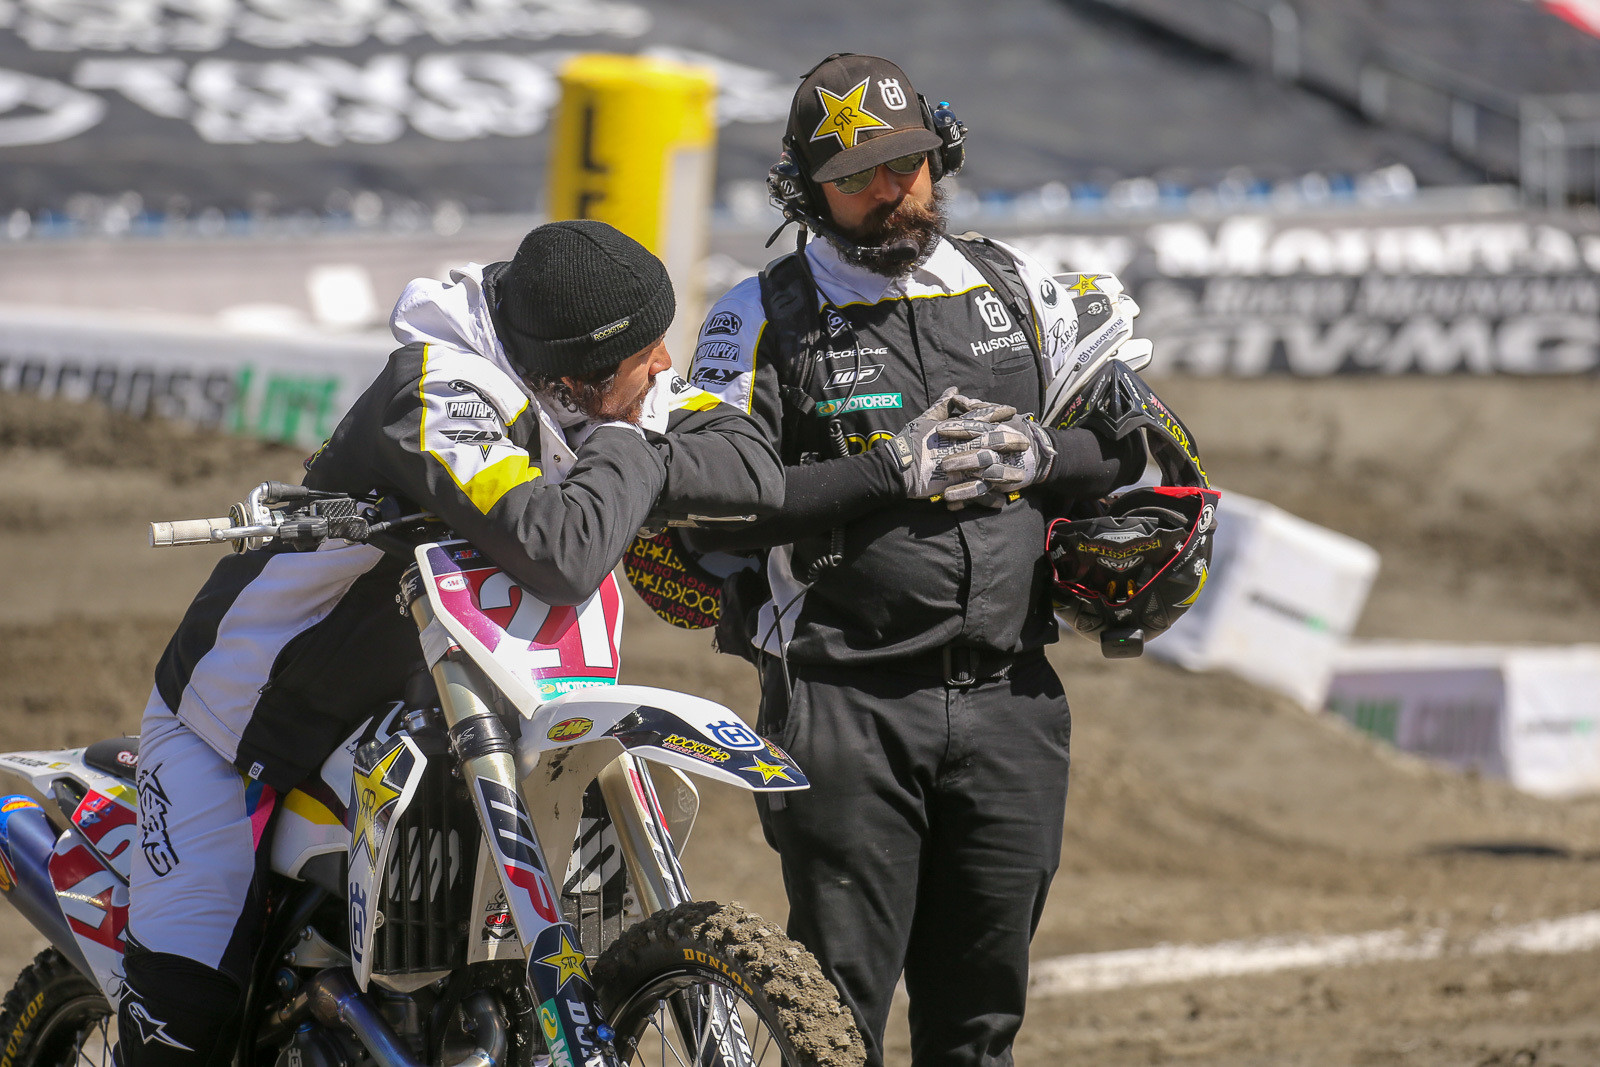 Jason Anderson is in a pretty enviable spot right now. He's got a 34-point lead after Foxborough, and can pretty much have a chill race next week...all he has to do is qualify for the main...and he'll wrap up the 2018 Monster Energy Supercross 450 title with a race to go.